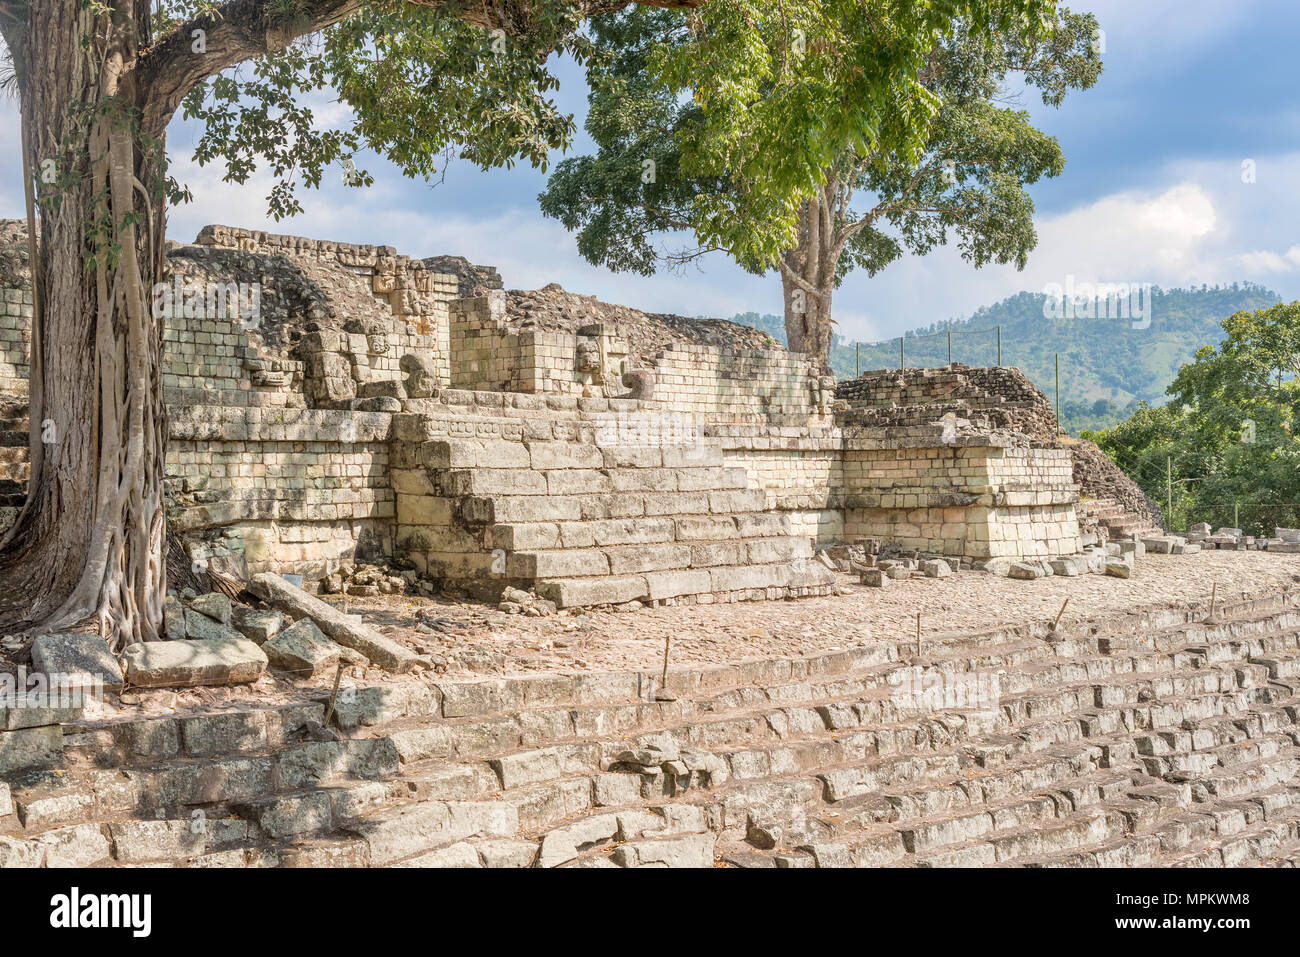 UNESCO world heritage site, famous Mayan site in Copan Ruinas, Honduras, Old stone buildings. - Stock Image